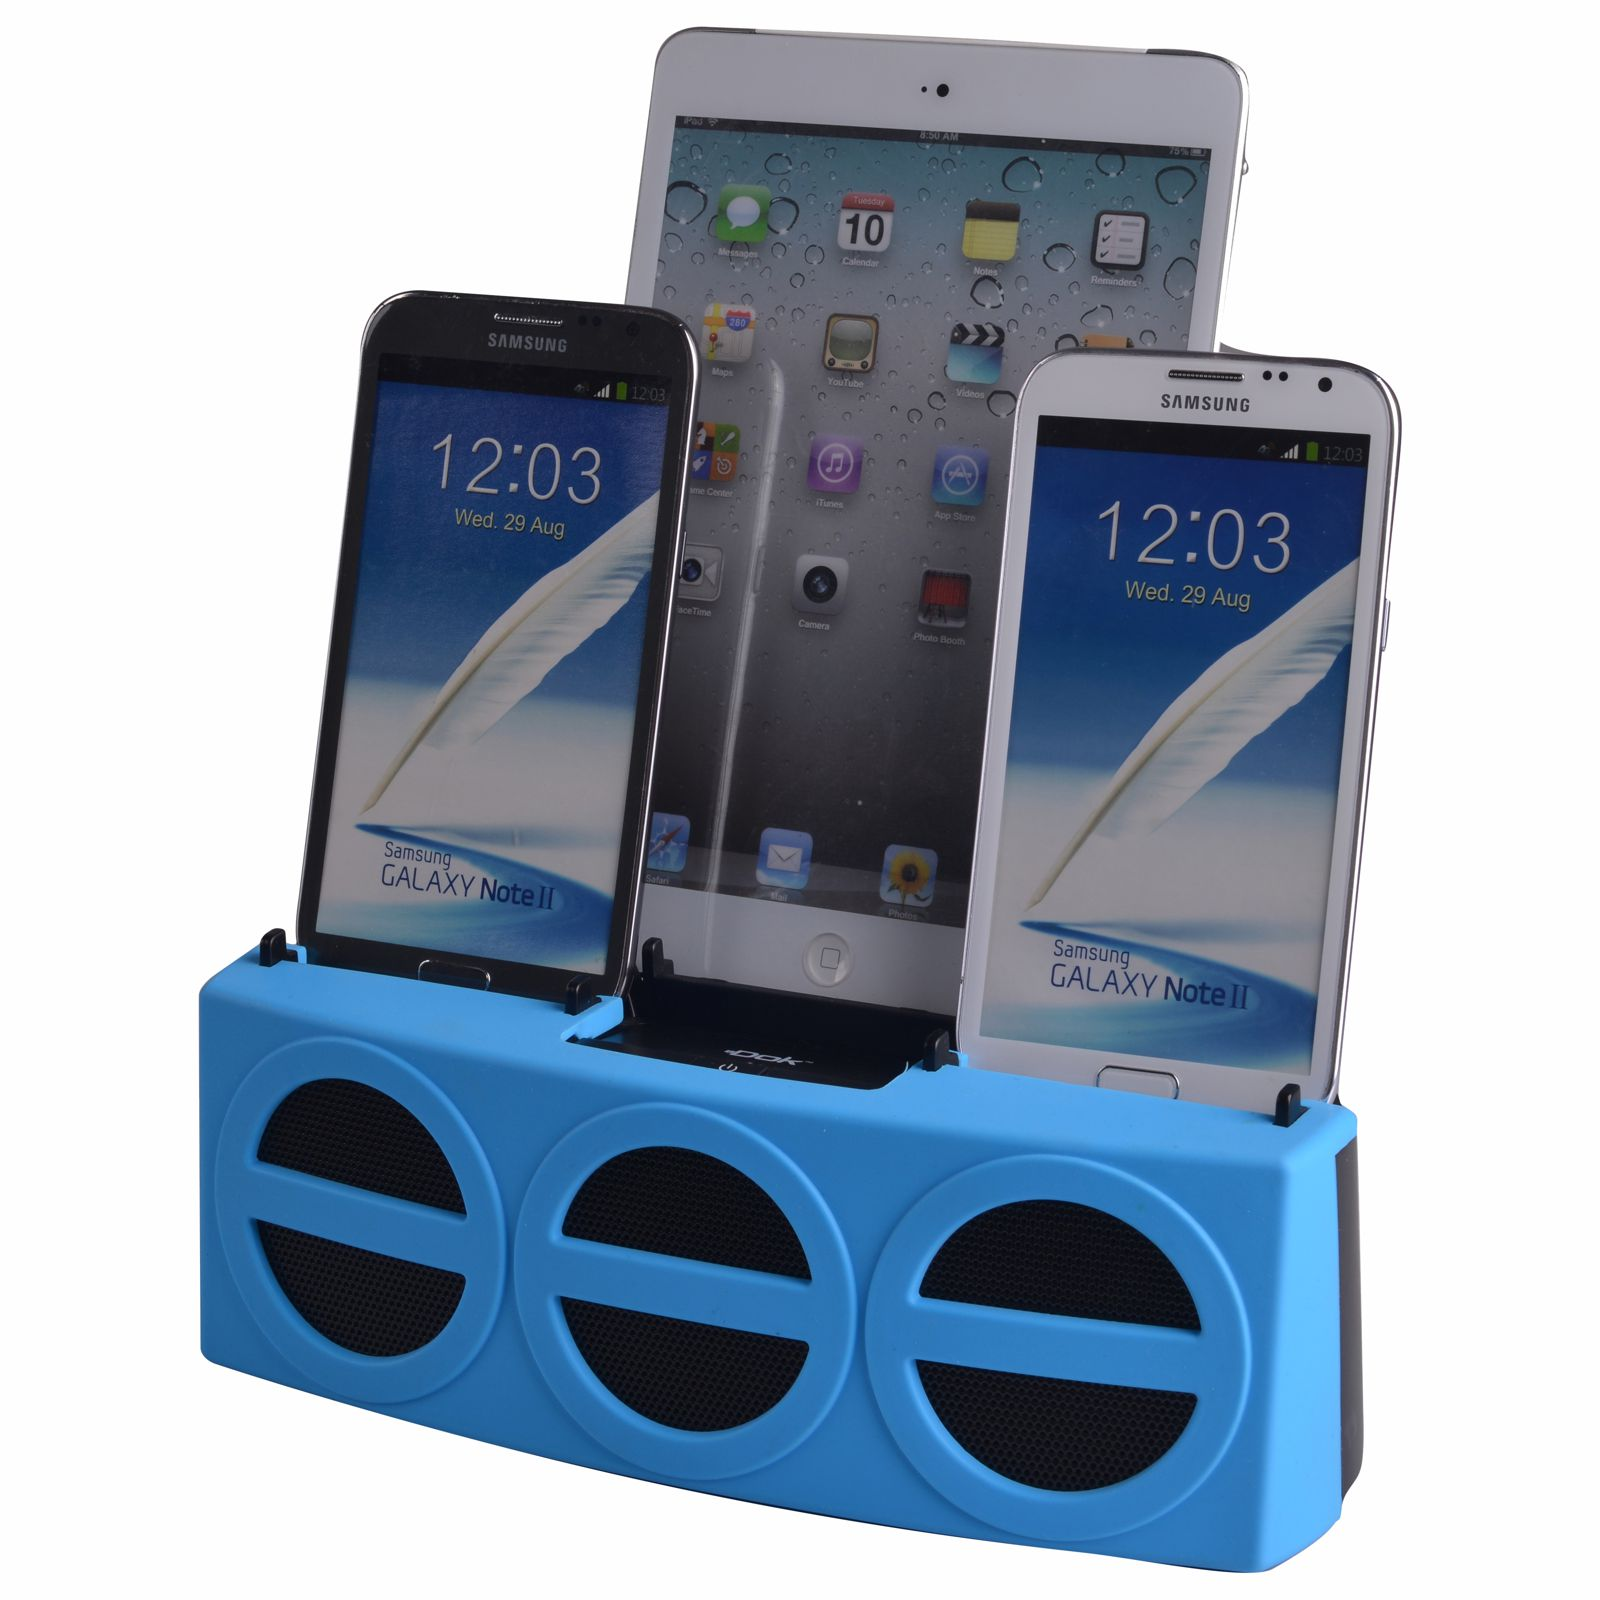 CR33BL - 5 Port Smart Phone Charger with Bluetooth Speaker and Speaker Phone (Blue Face)